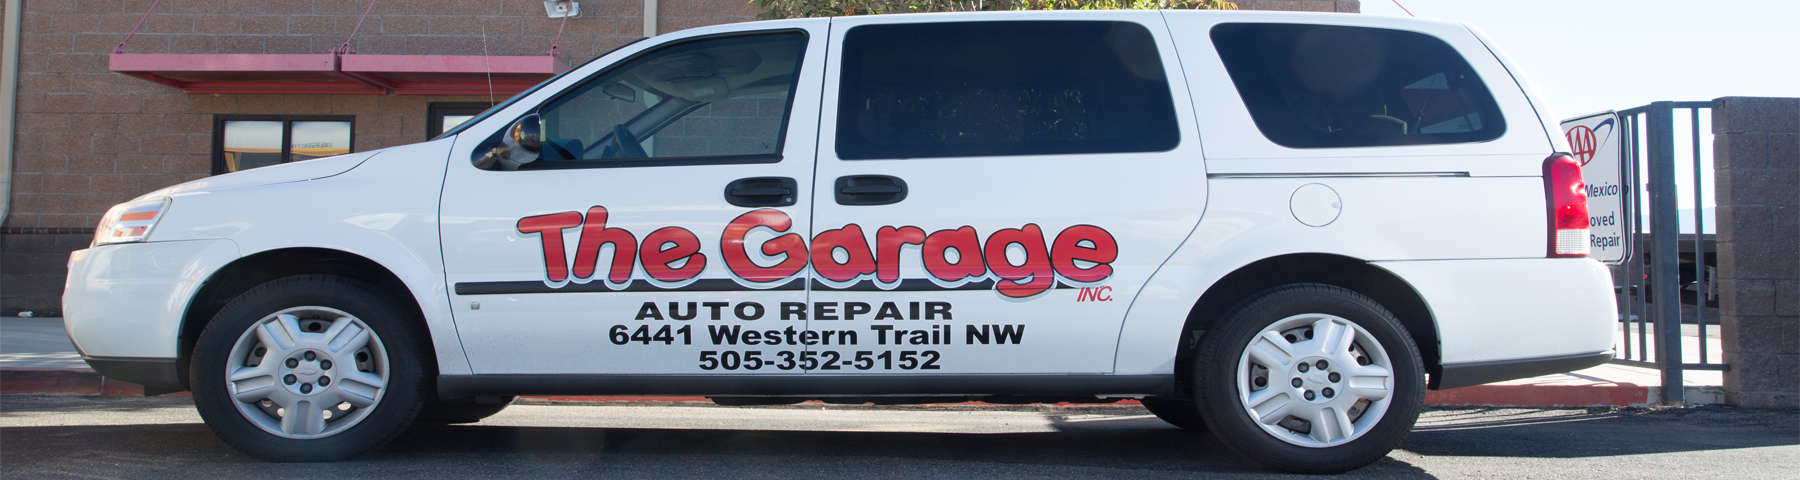 The Garage - expert auto repair - Albuquerque, NM 87120